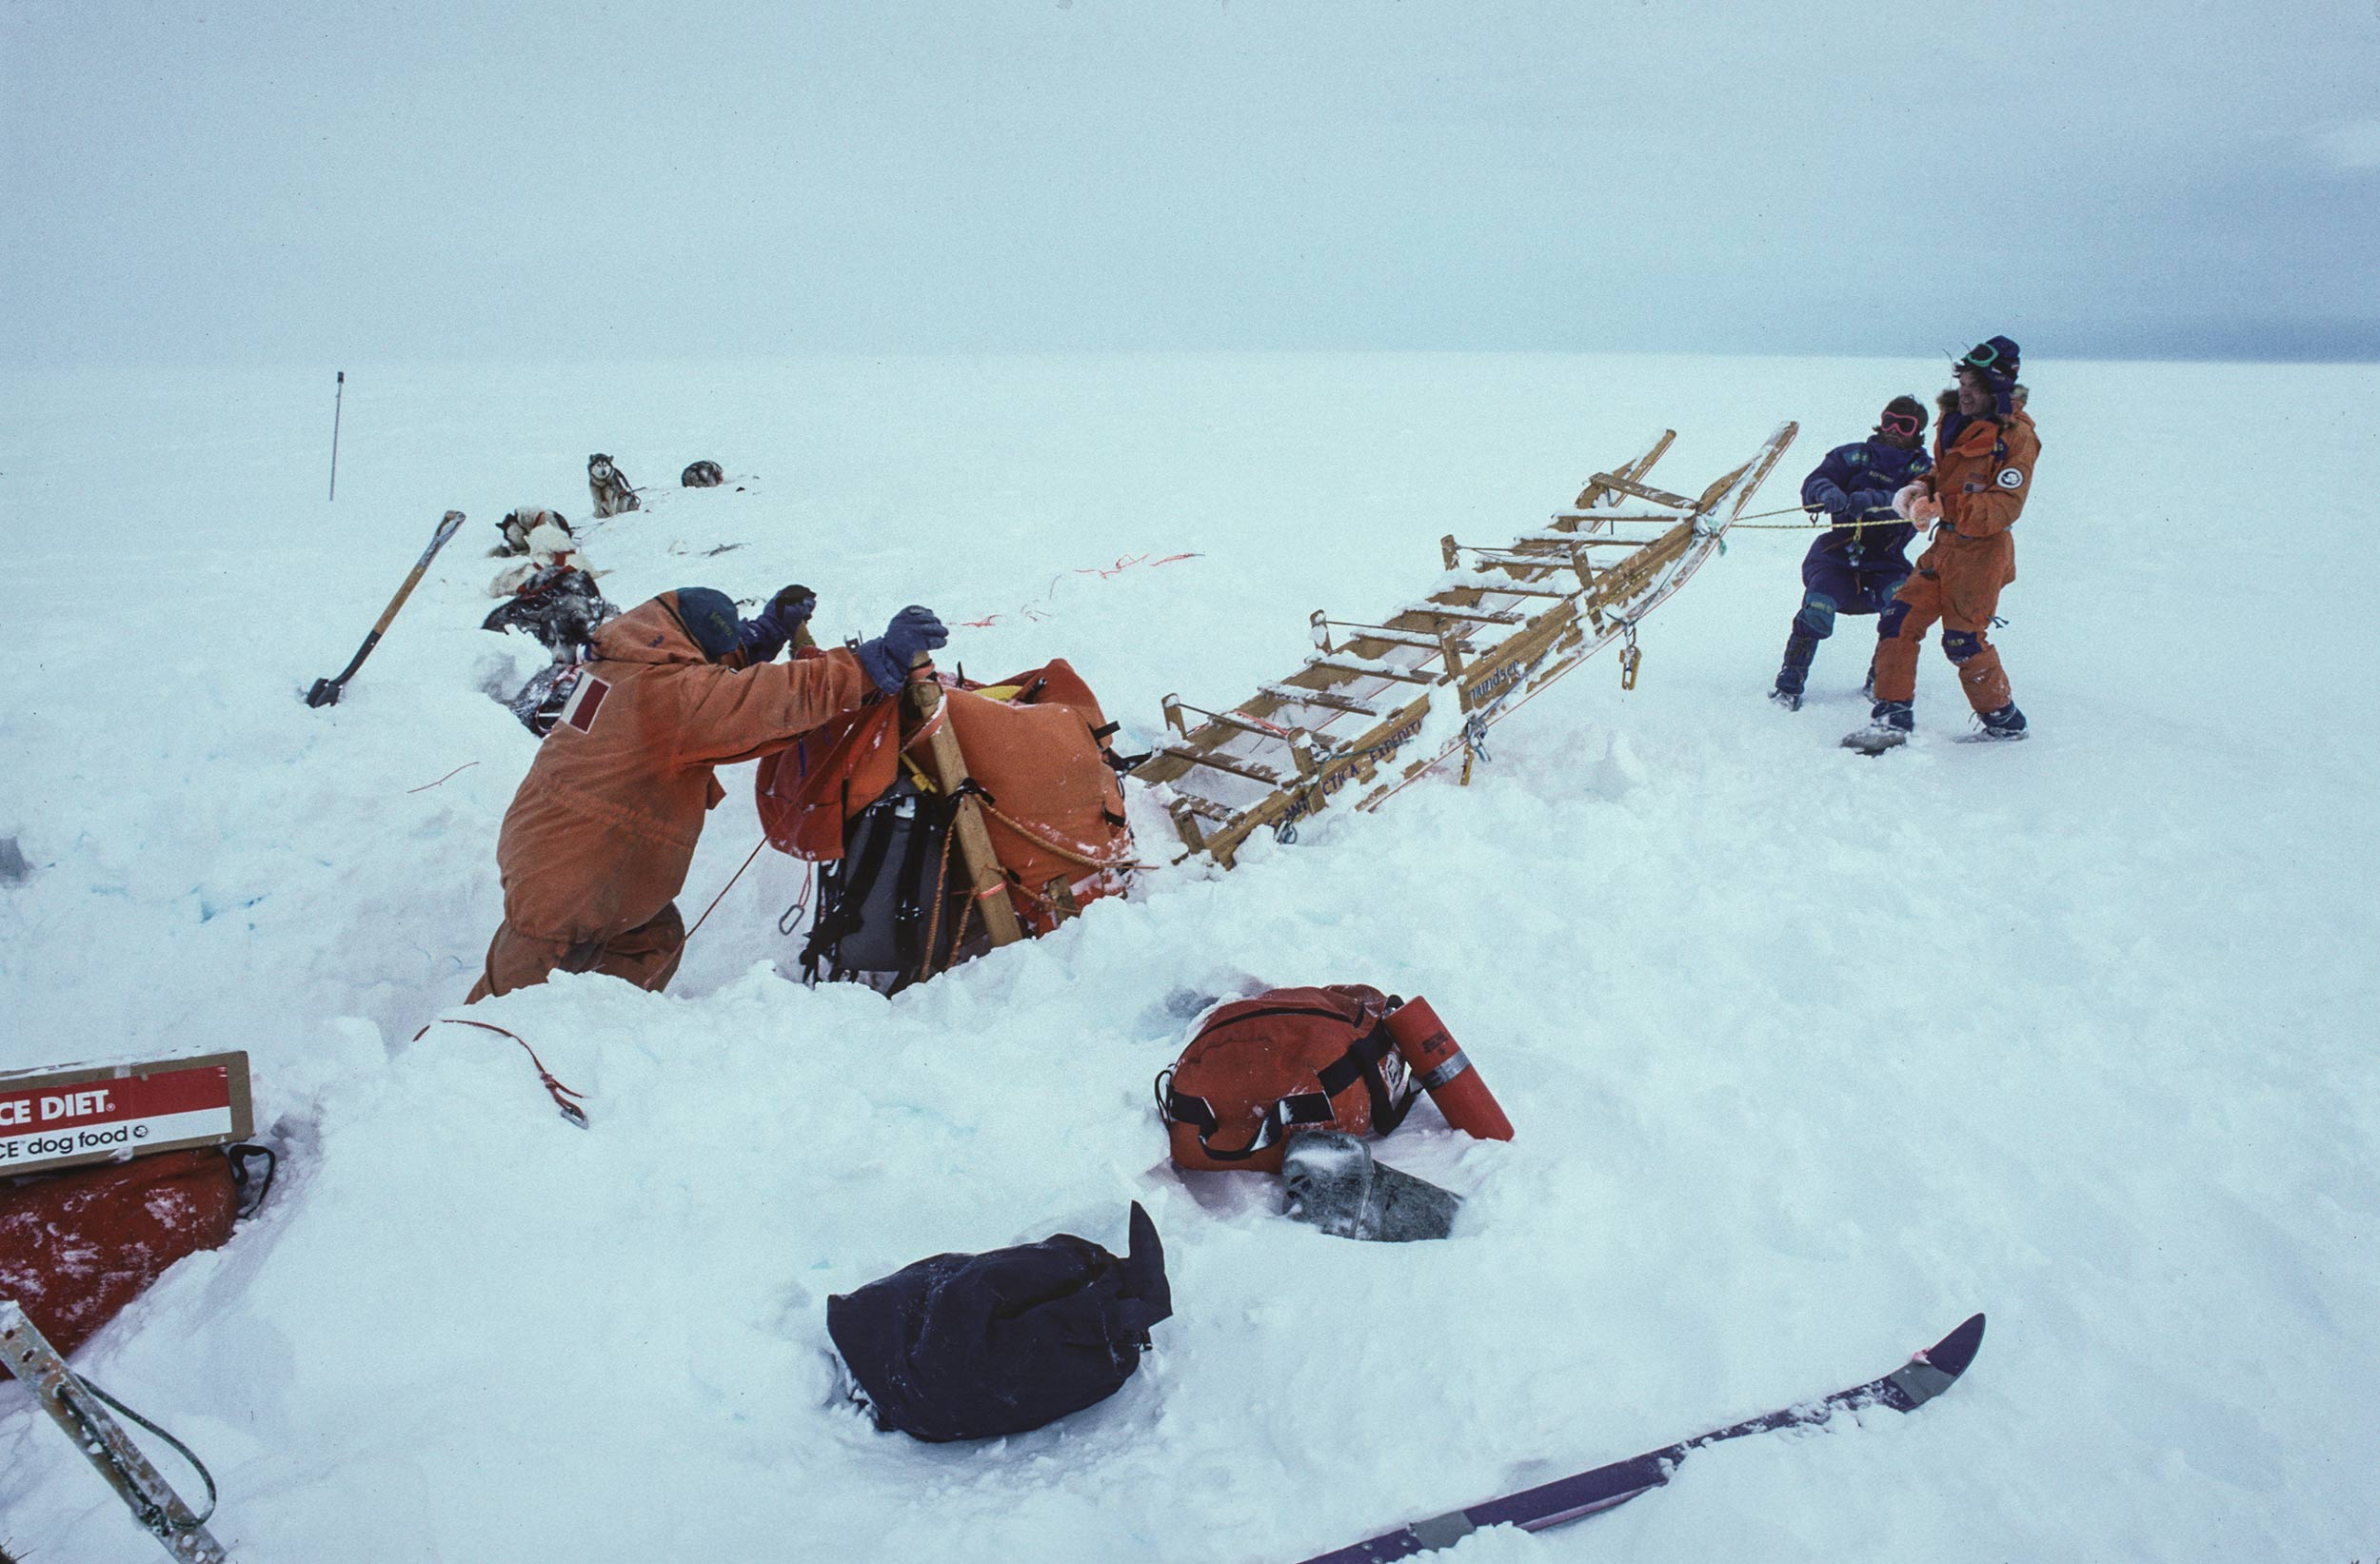 Trans-Antarctica-Expedition-digging-out-after-a-storm